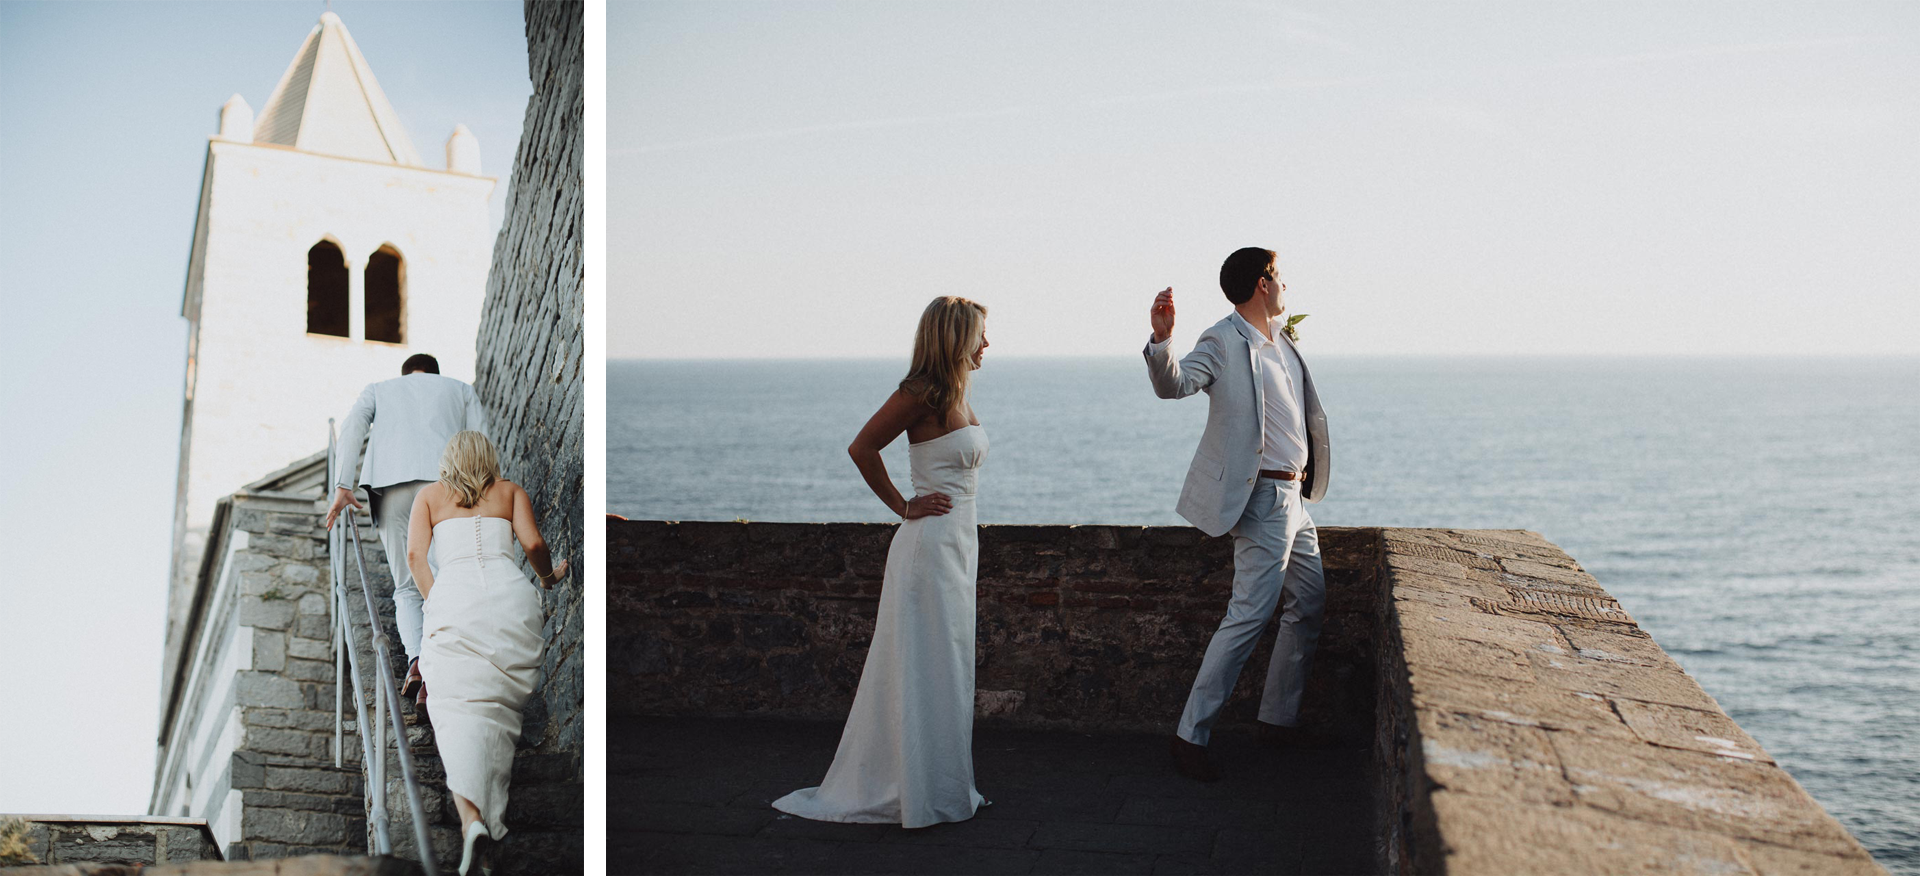 Kristy-Seth-Italy-Elopement-096@2x.png